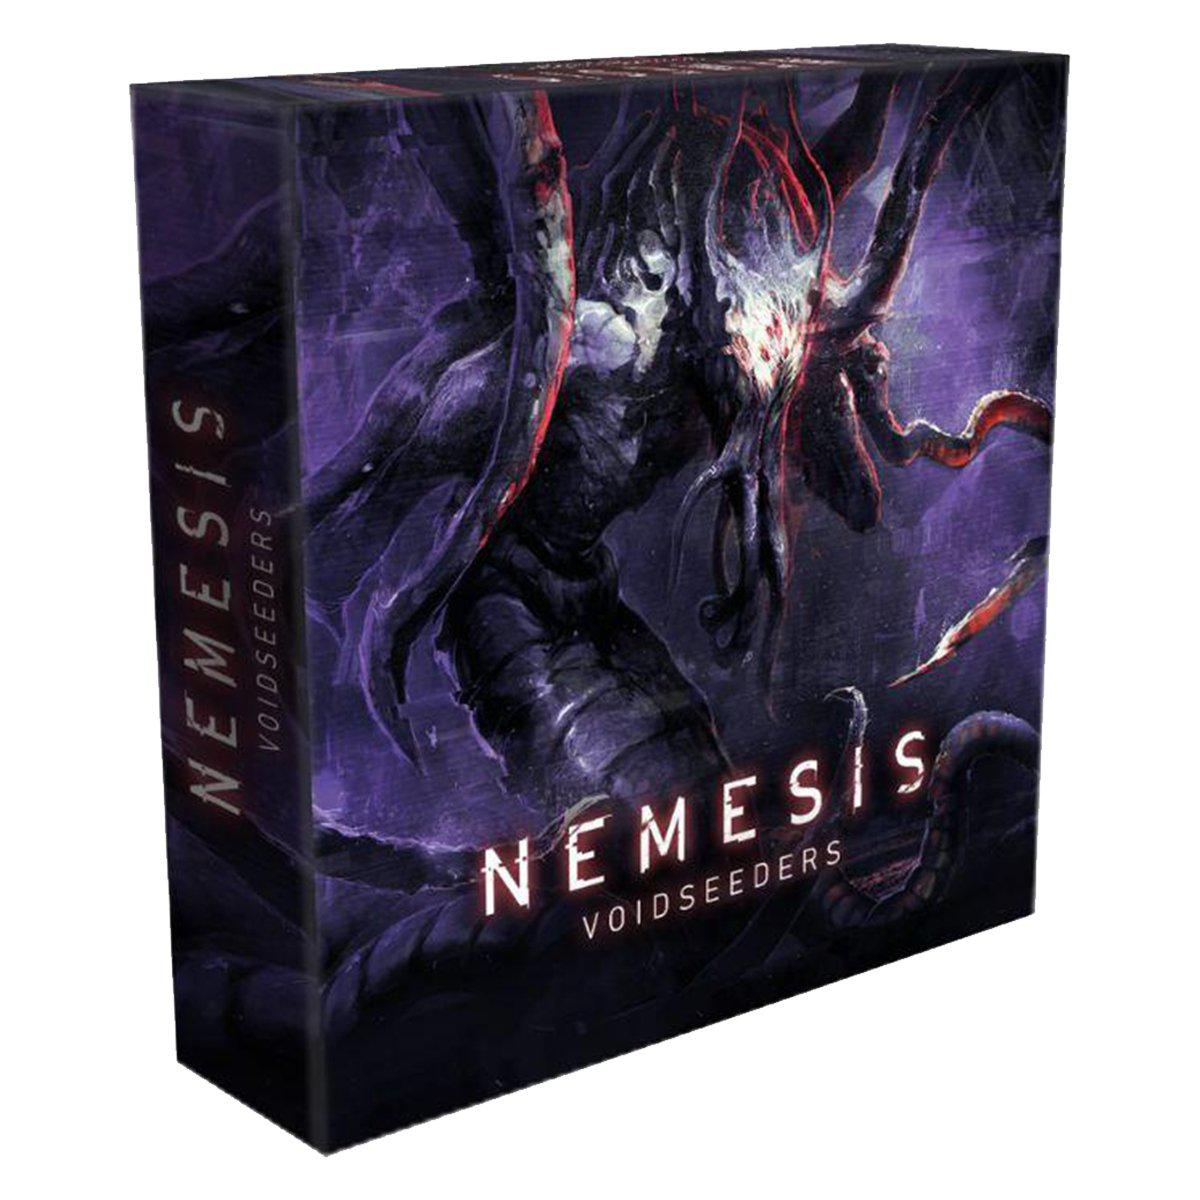 Nemesis Void Seeders-Awaken Realms-Game Kings